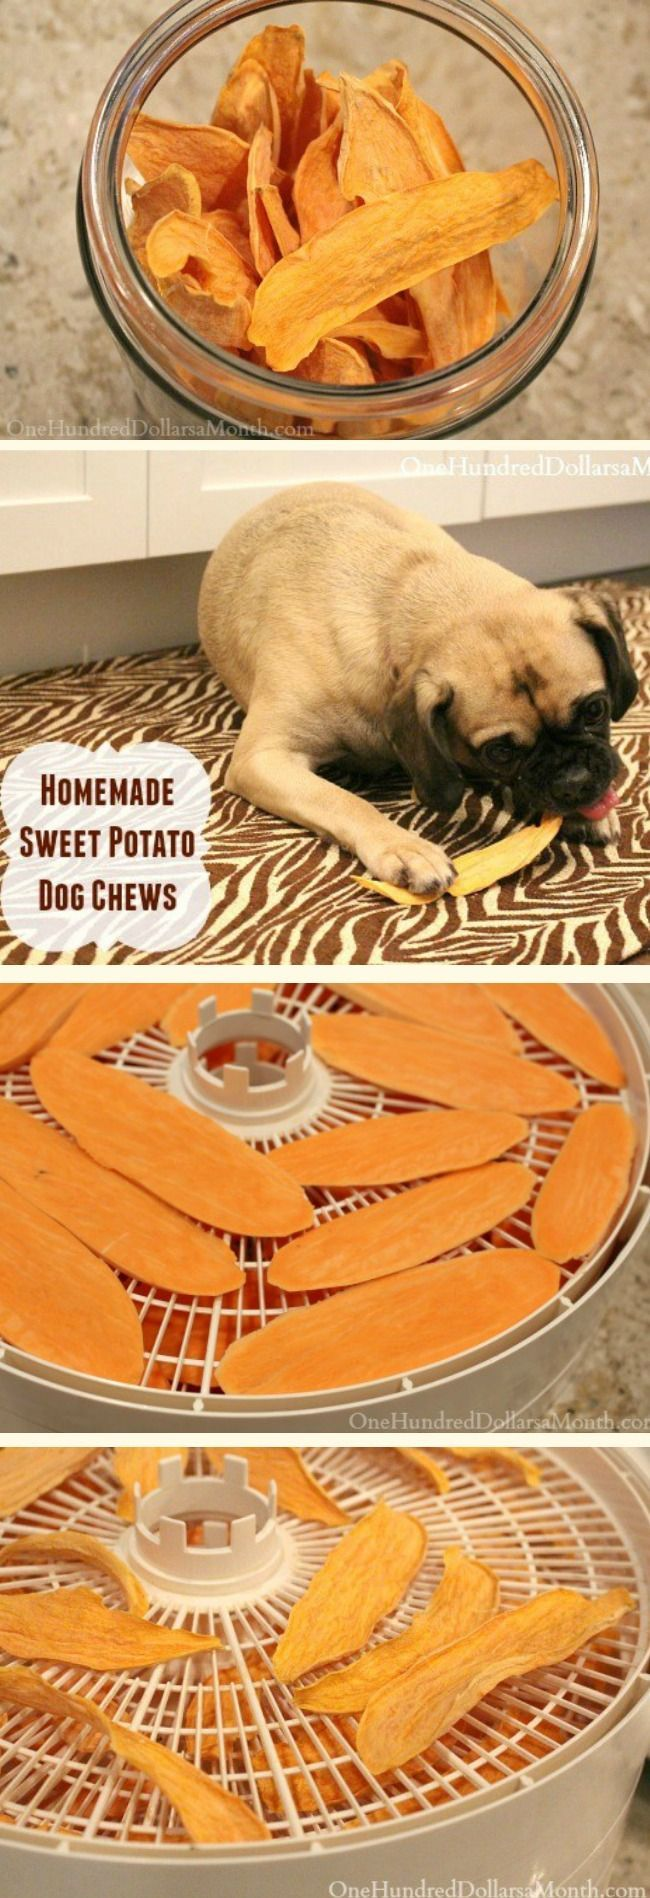 I was at the pet store the other day and noticed Sweet Potato Dog Chews for $7.99 a bag and thought … huh? I could totally do that! It looked just like dehydrated sweet potatoes, and I can dehydrate things in my sleep. So I made some and Lucy devoured the